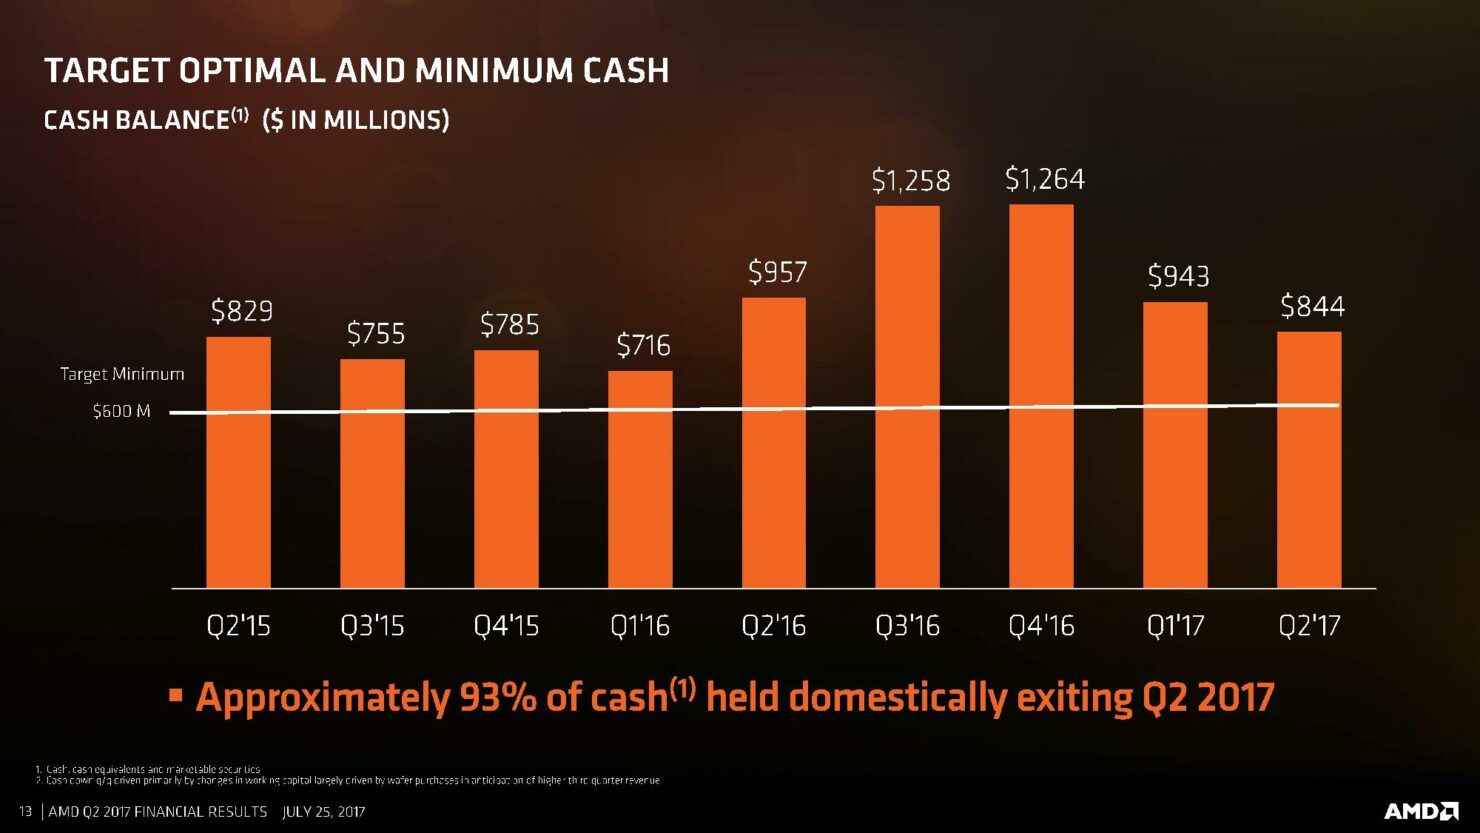 amd-cfo-commentary-slides-q2-17-page-013